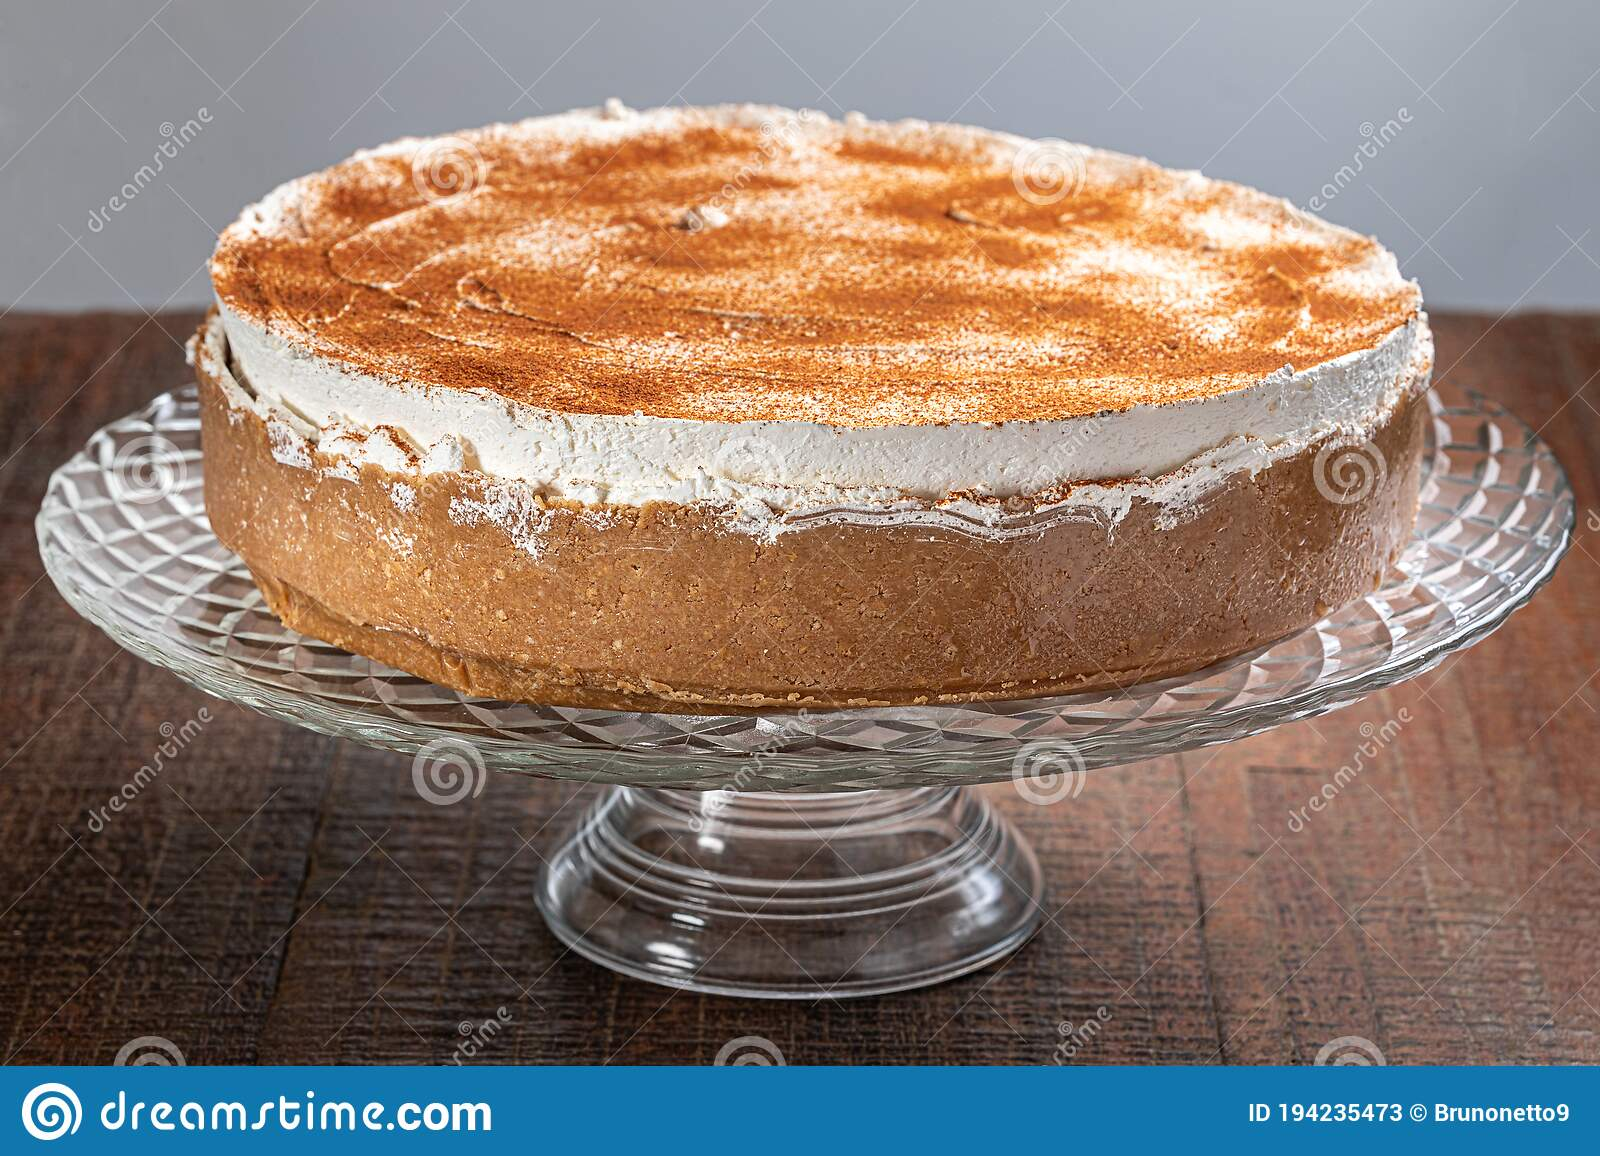 1 724 De Pie Photos Free Royalty Free Stock Photos From Dreamstime